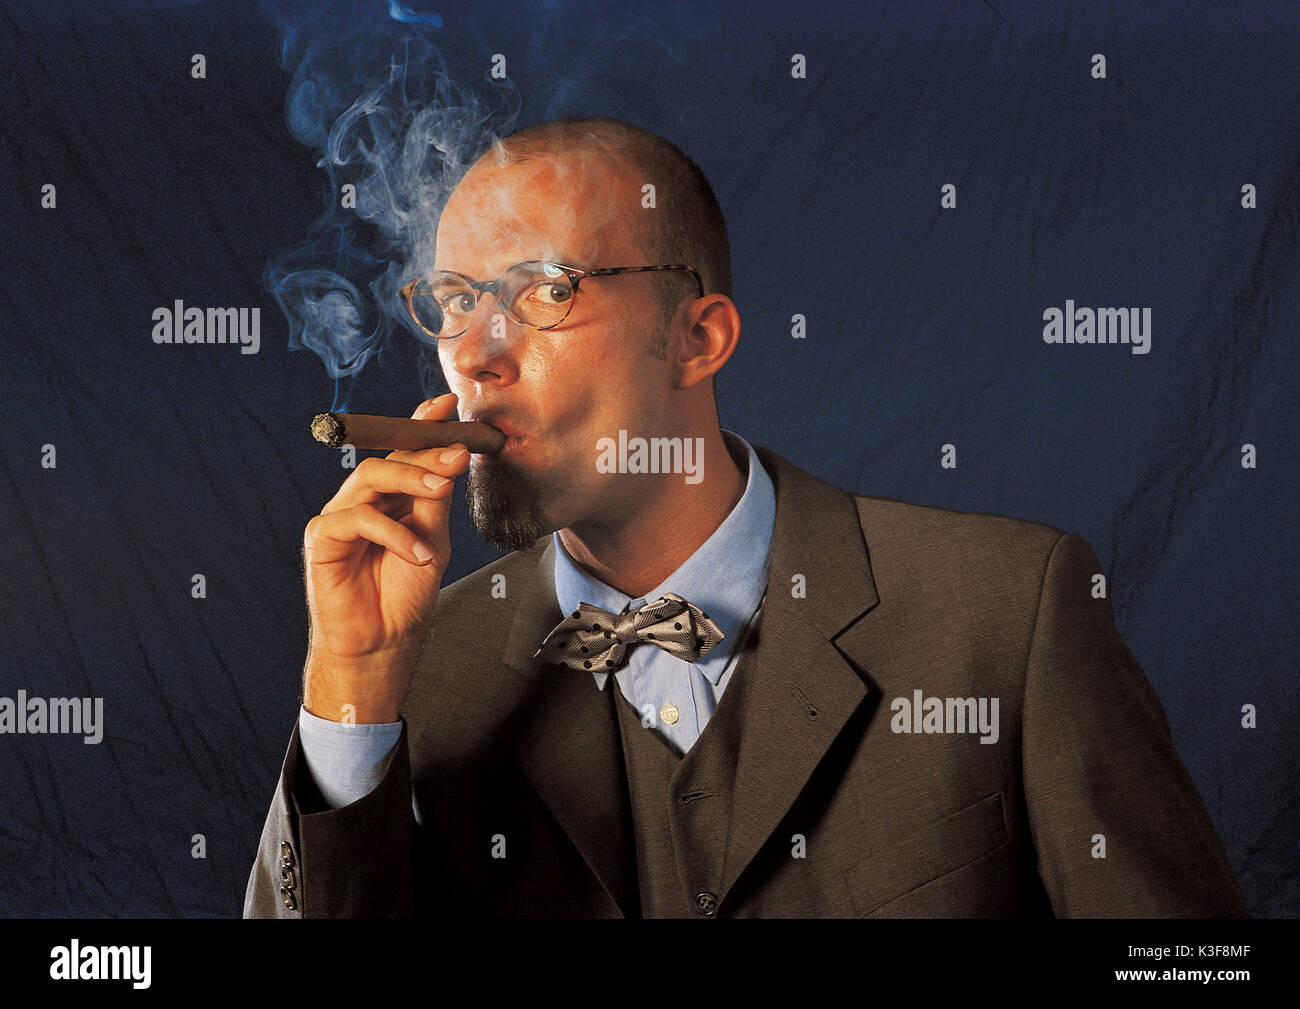 Cigar smoking man in suit with bow tie - Stock Image